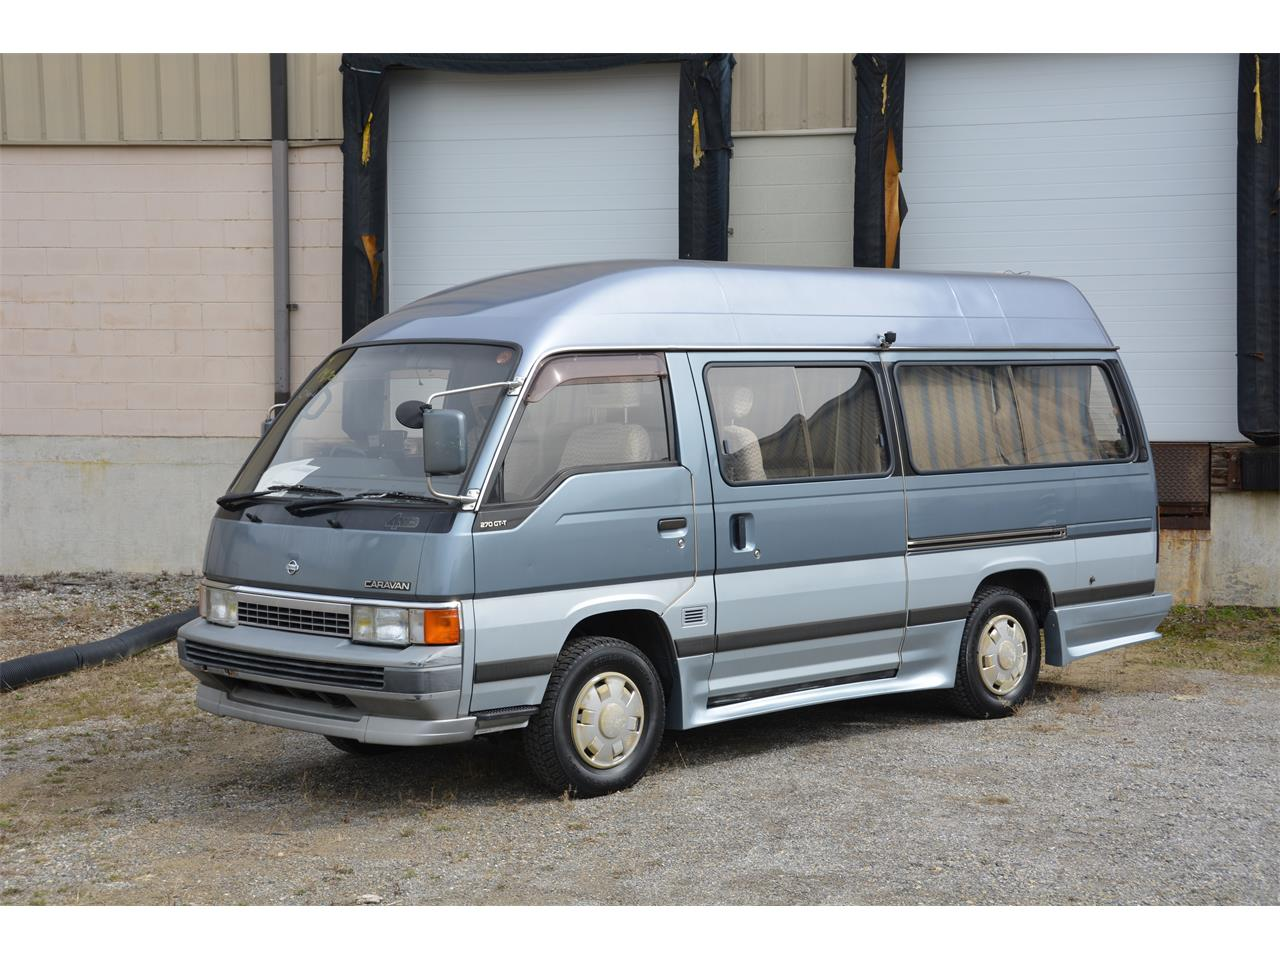 Large Picture of 1990 Caravan located in Christiansburg Virginia - $17,900.00 Offered by Duncan Imports & Classic Cars - LN58